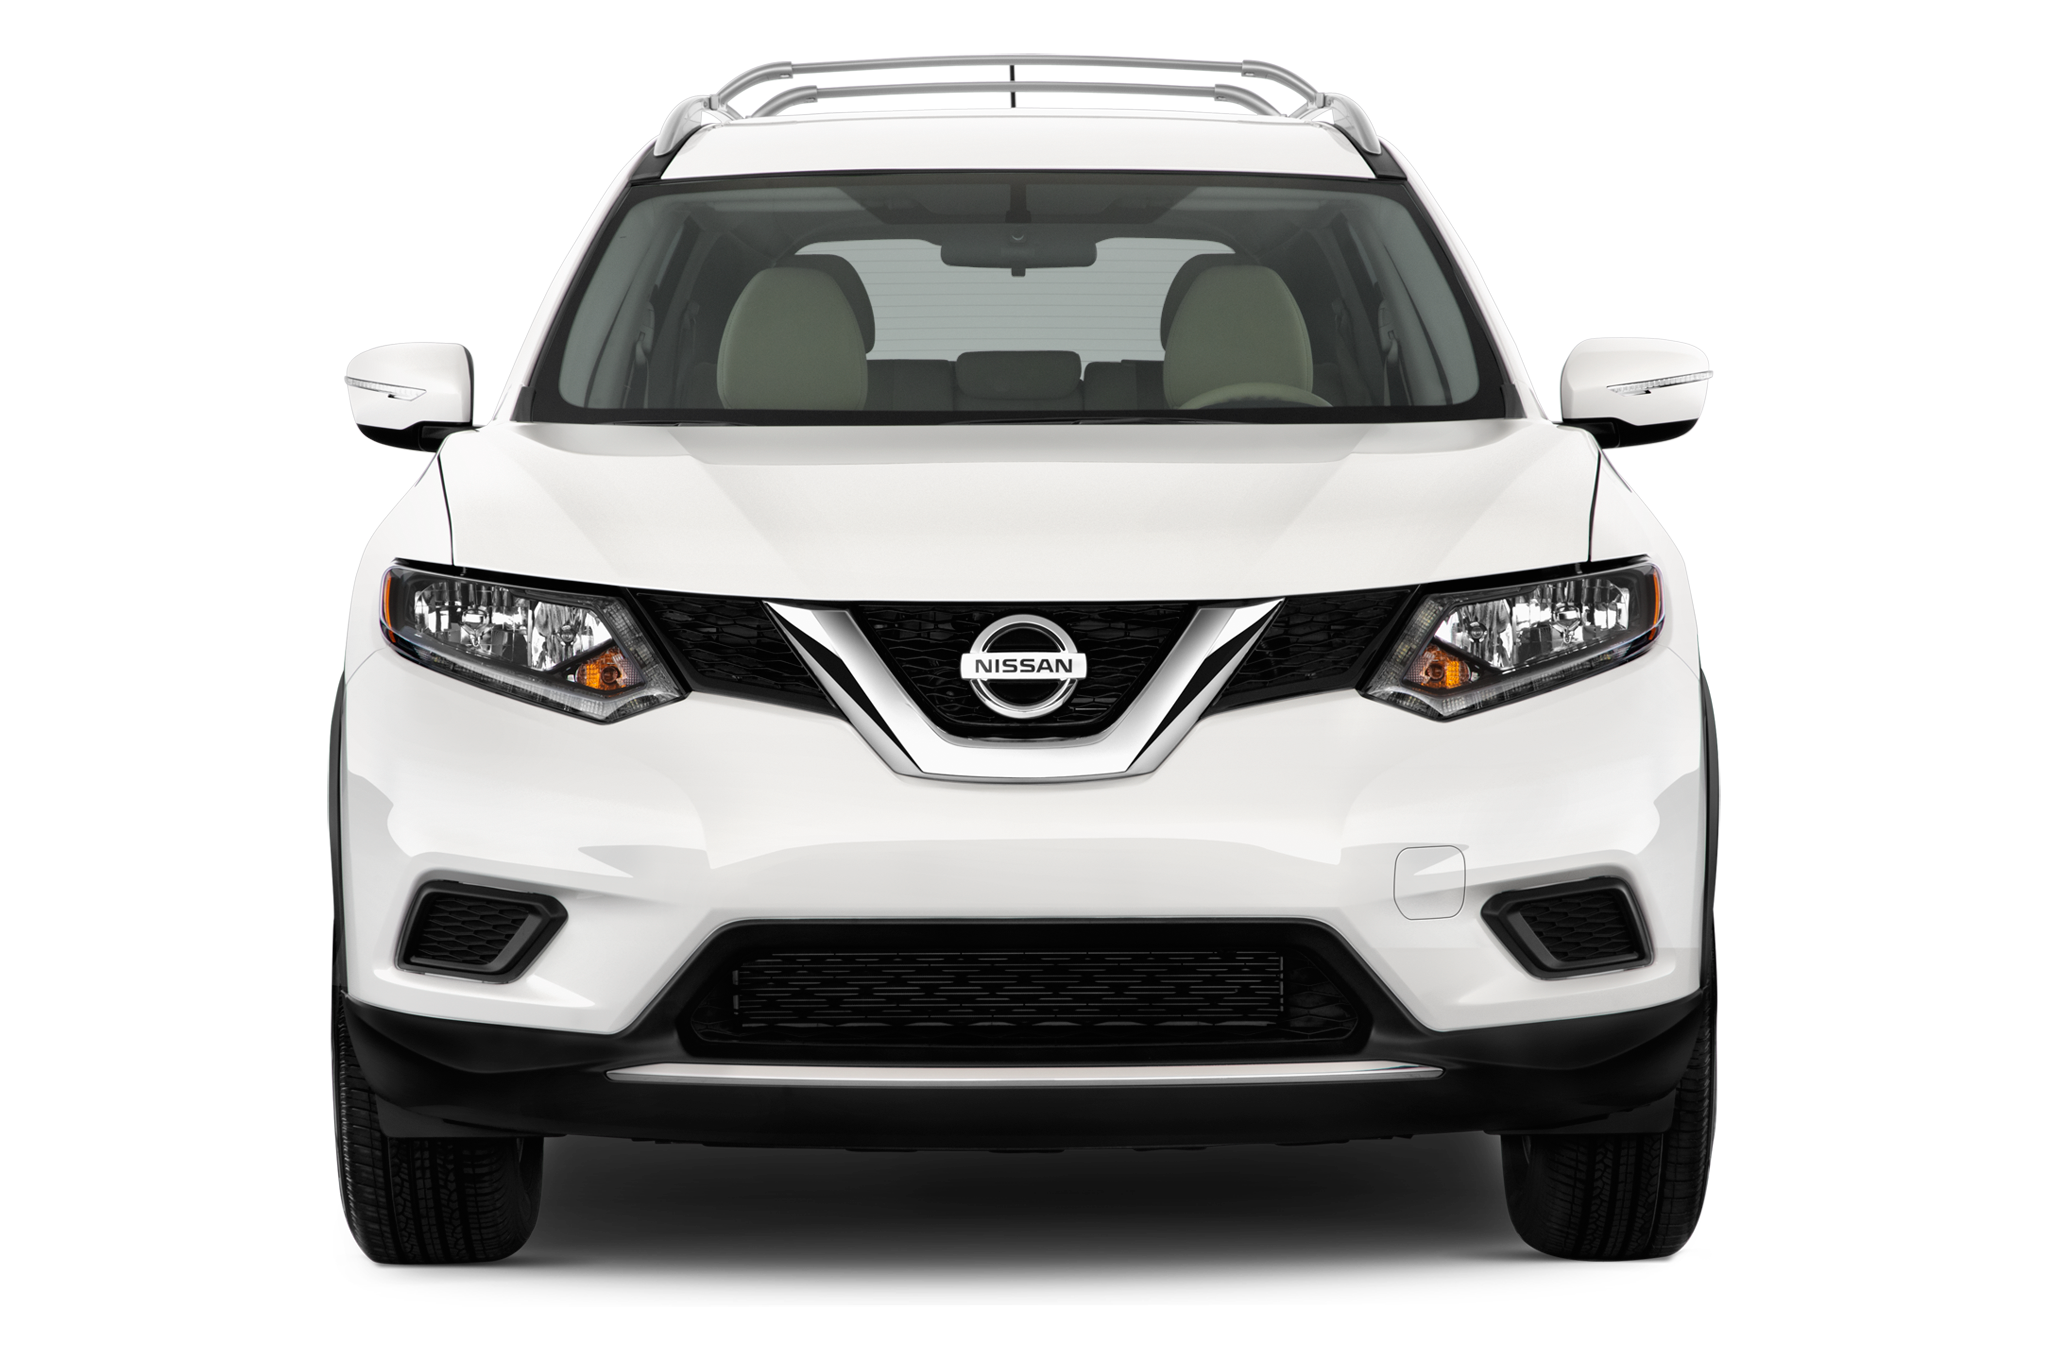 Report: Nissan Qashqai Crossover Coming to the U.S.?